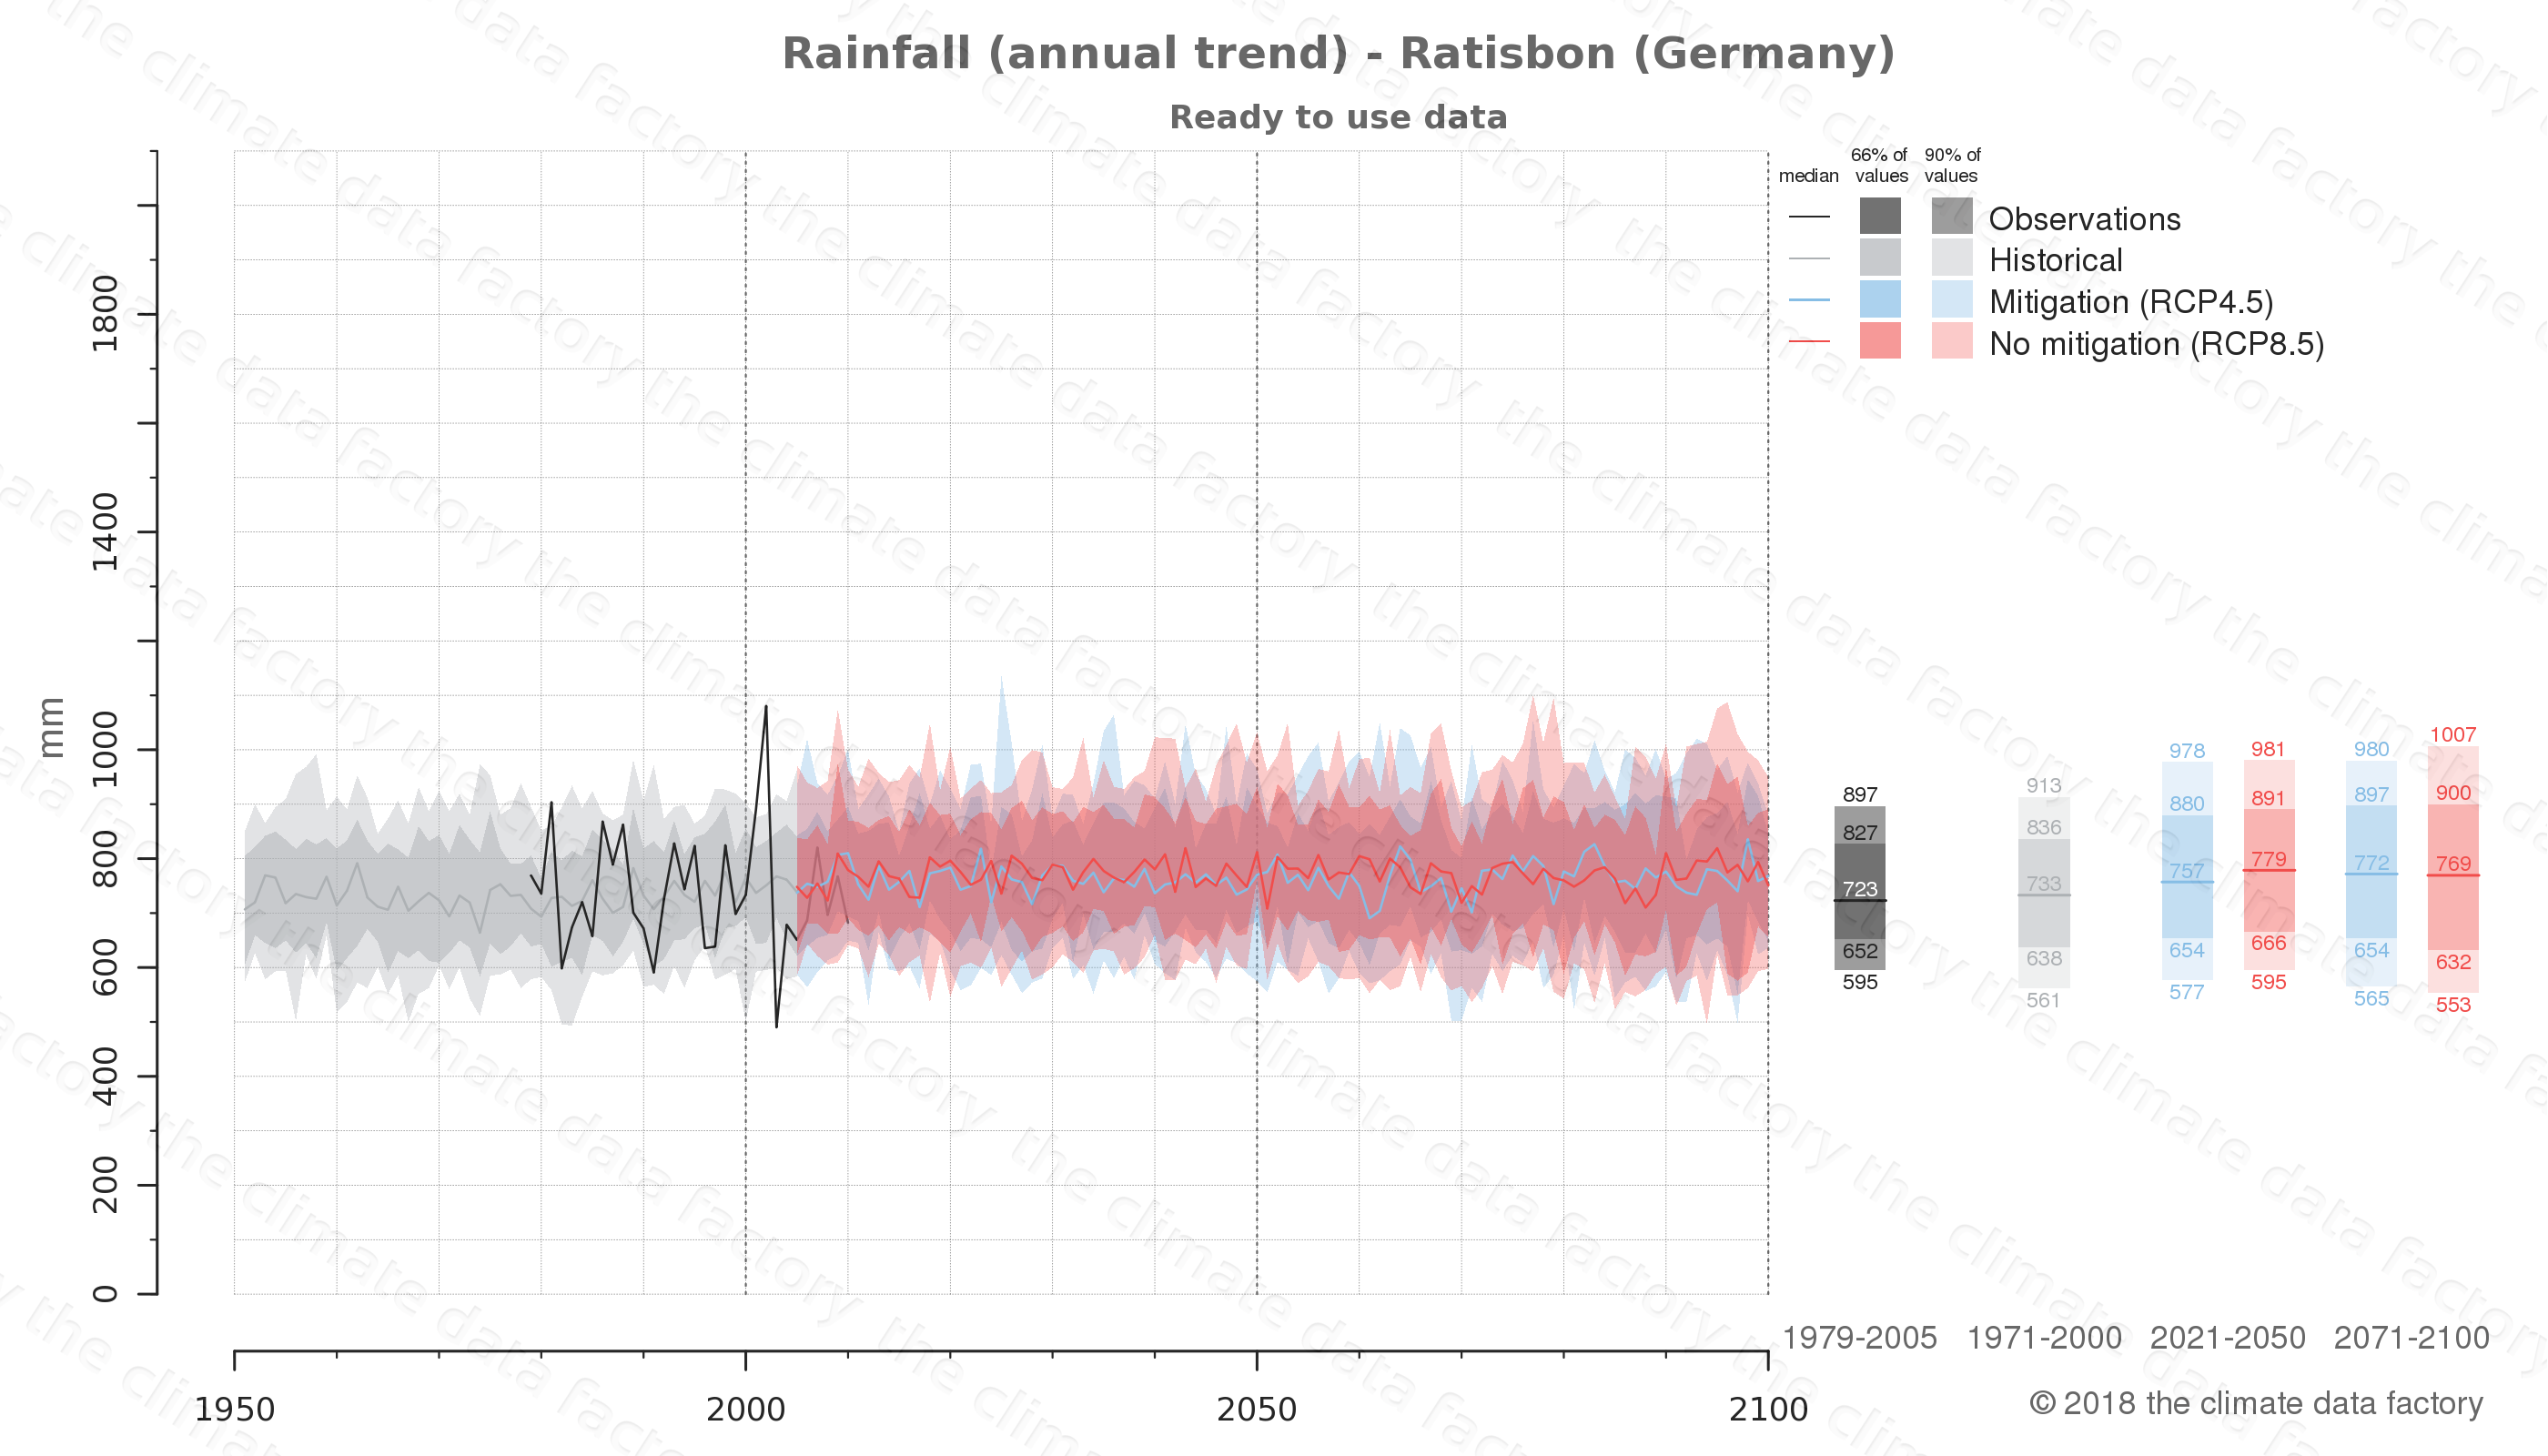 climate change data policy adaptation climate graph city data rainfall ratisbon germany